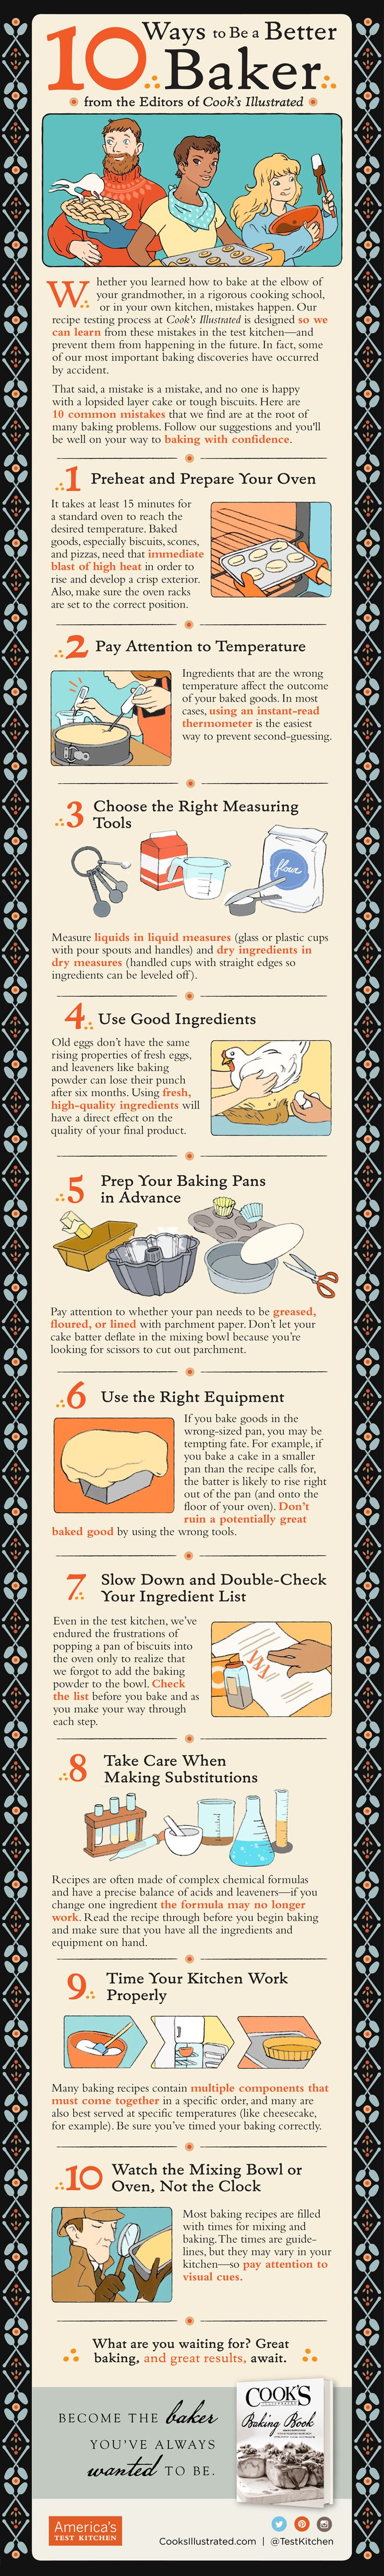 79 best kitchen tips images on pinterest food tips cooking